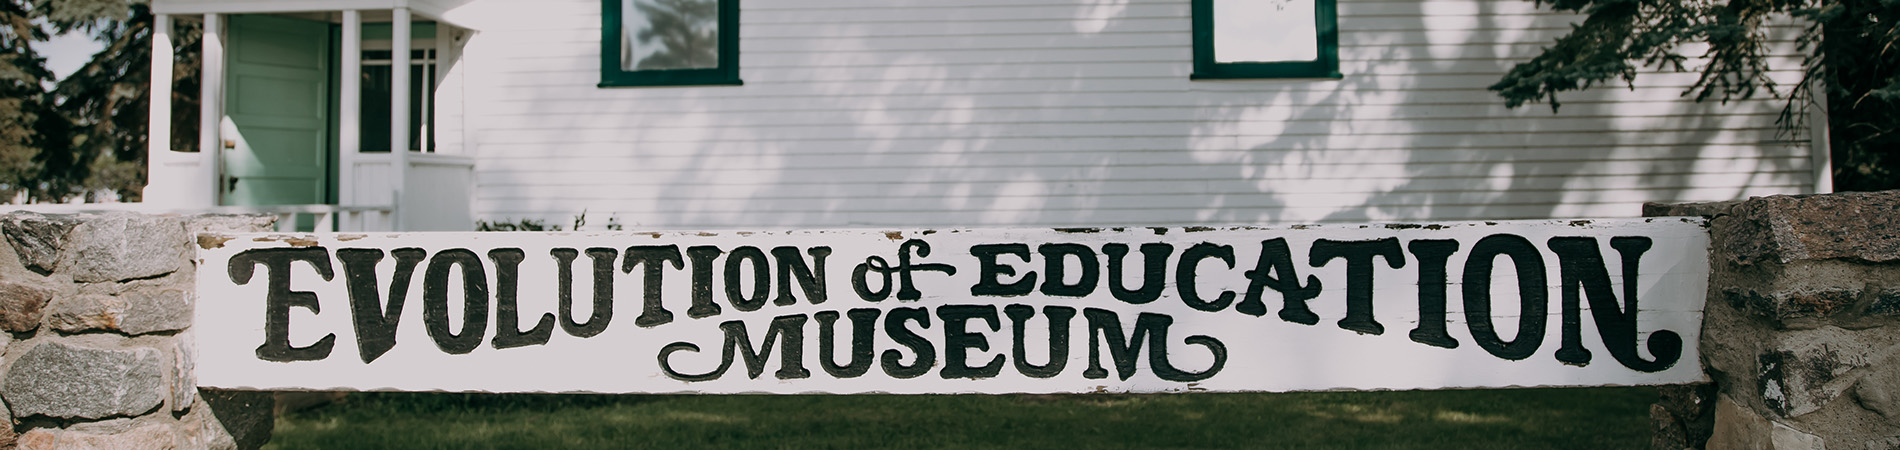 Education Museum sign